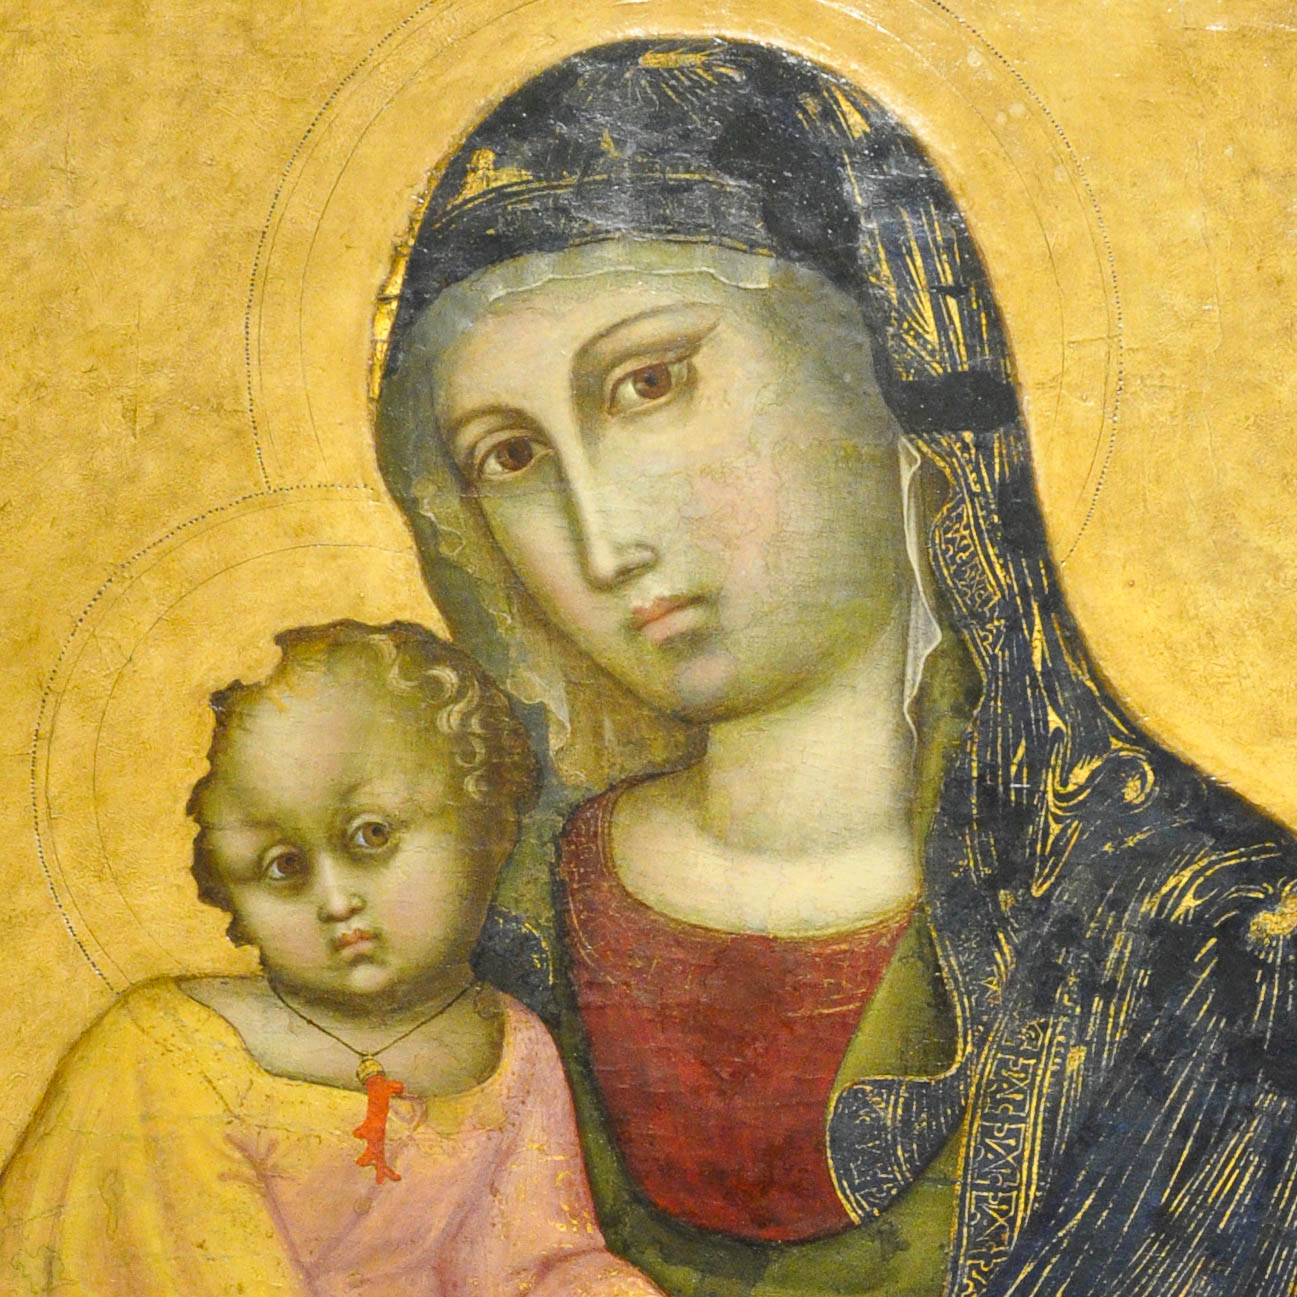 Madonna with a child, Barnaba da Modena, middle of 14th century, Antique Art Museum, Palazzo Madama, Turin, Italy